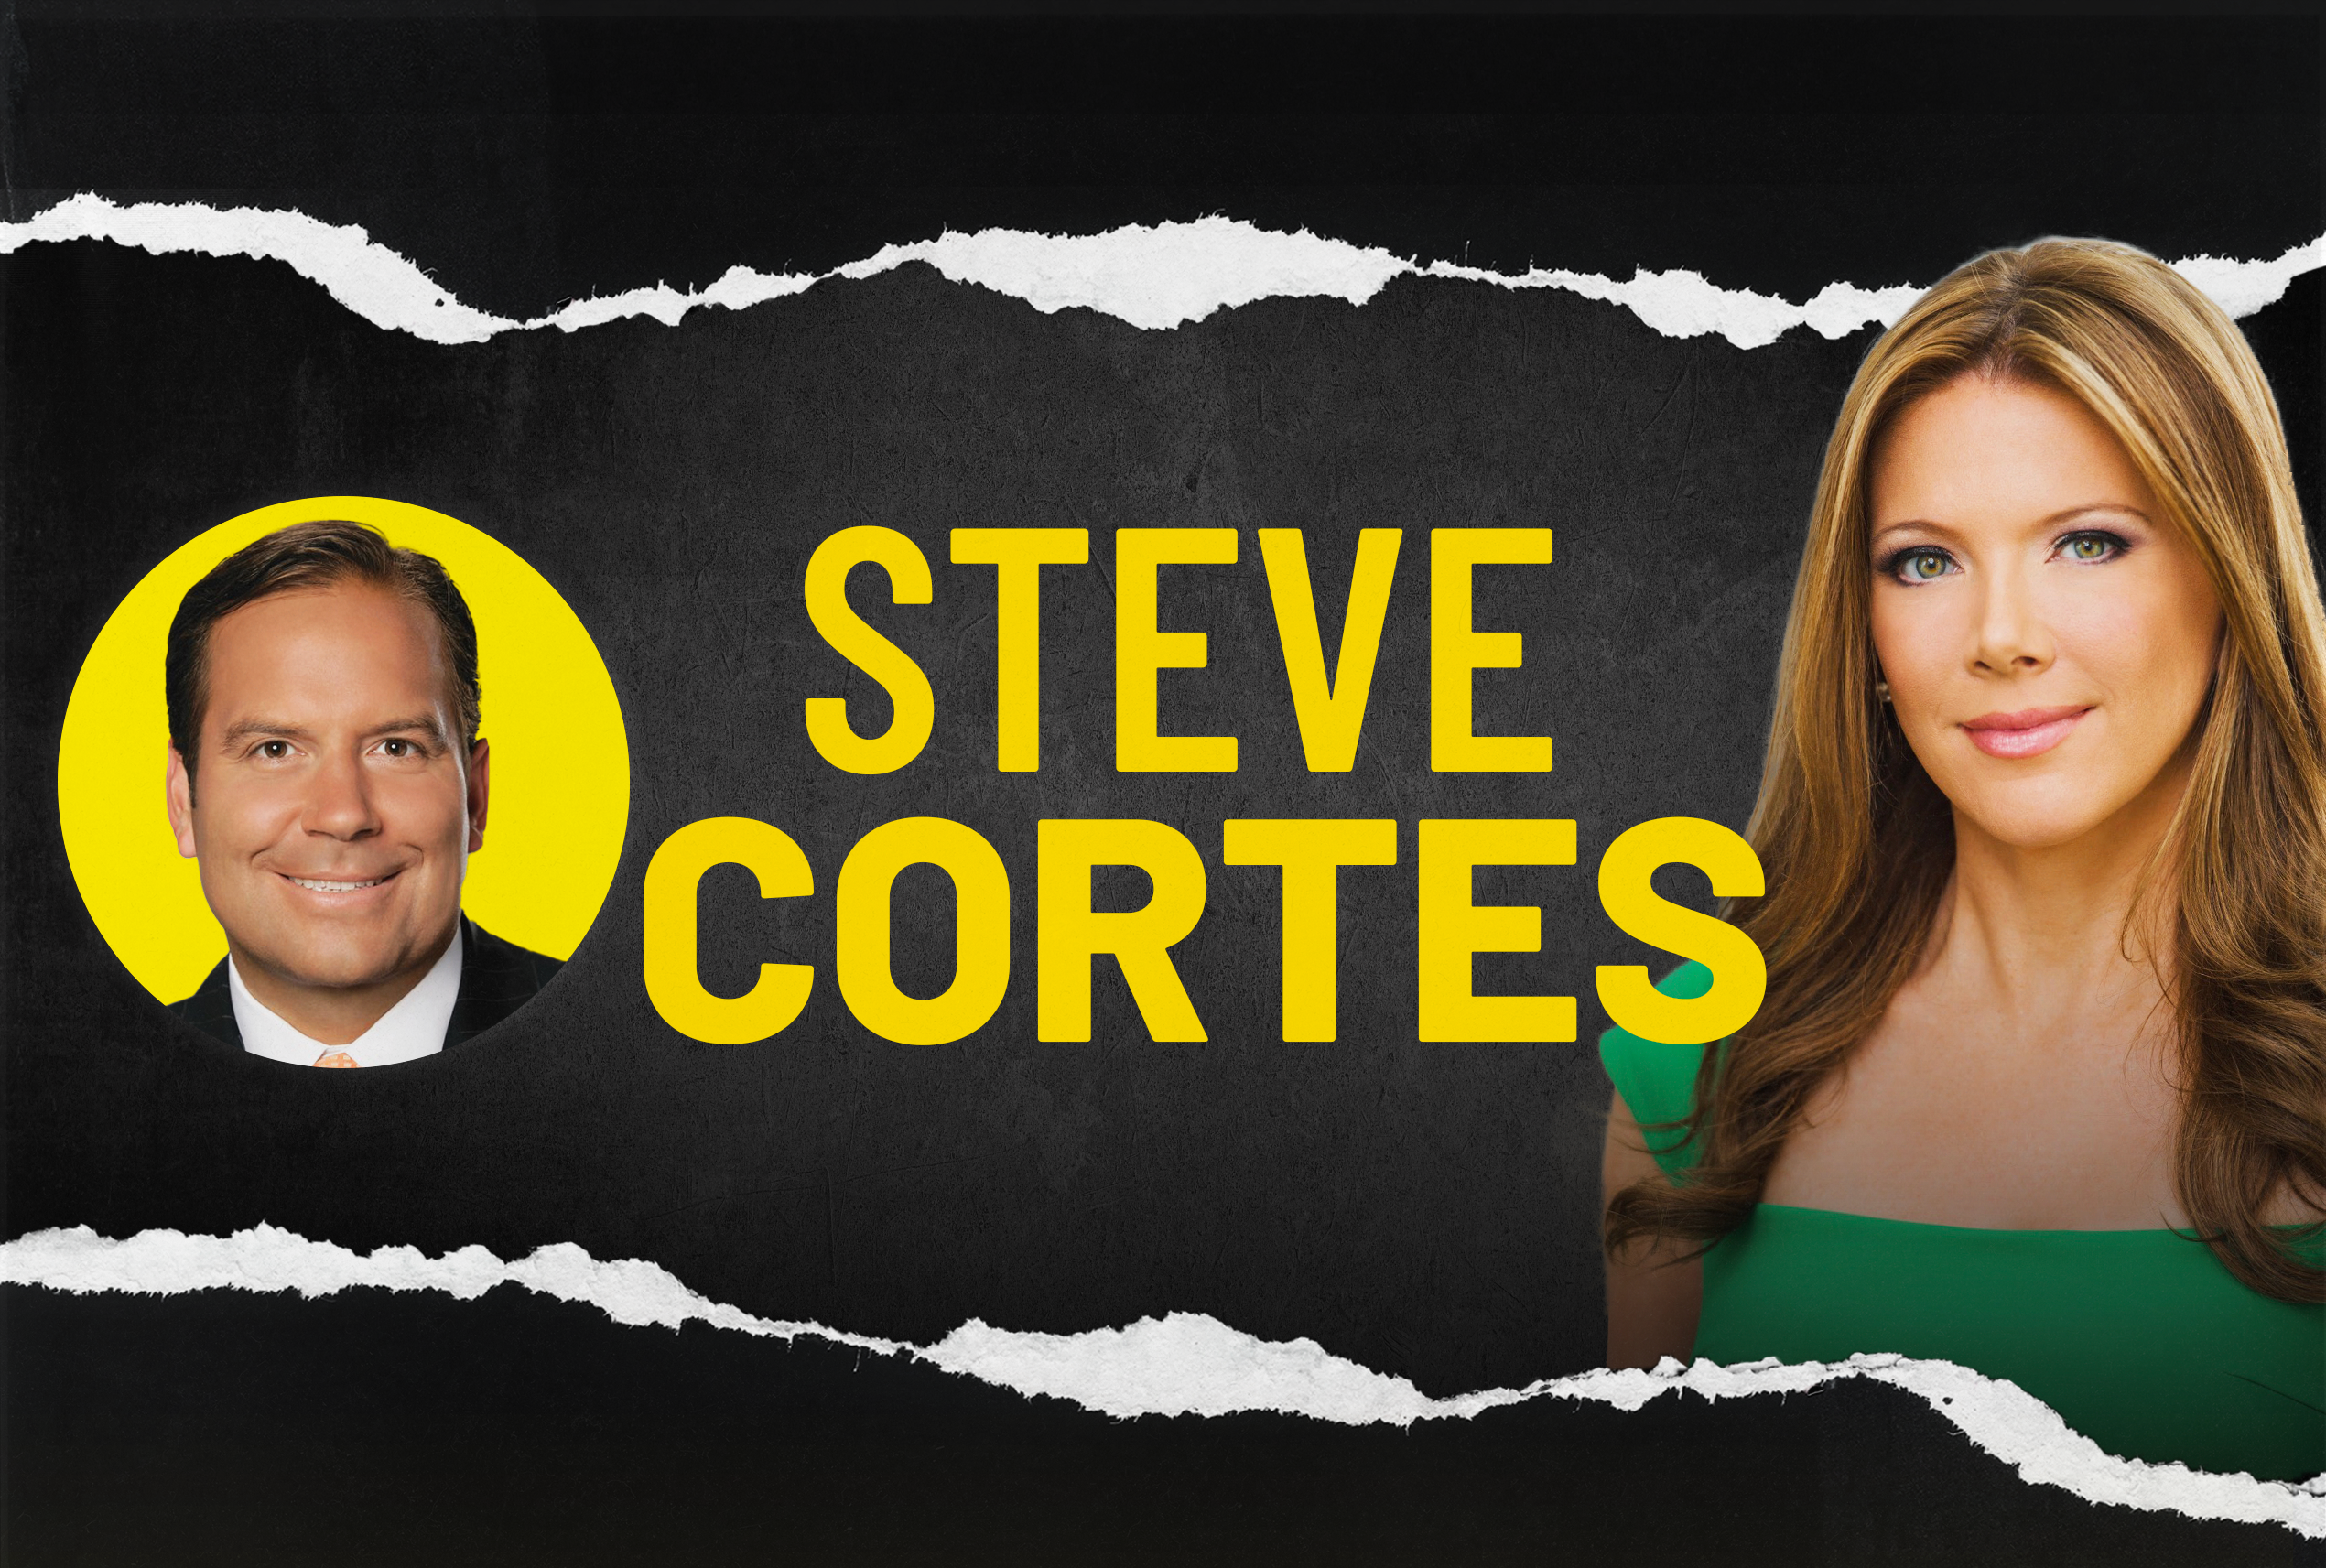 Steve Cortes Blasts the Fed for Decimating the American Middle Class